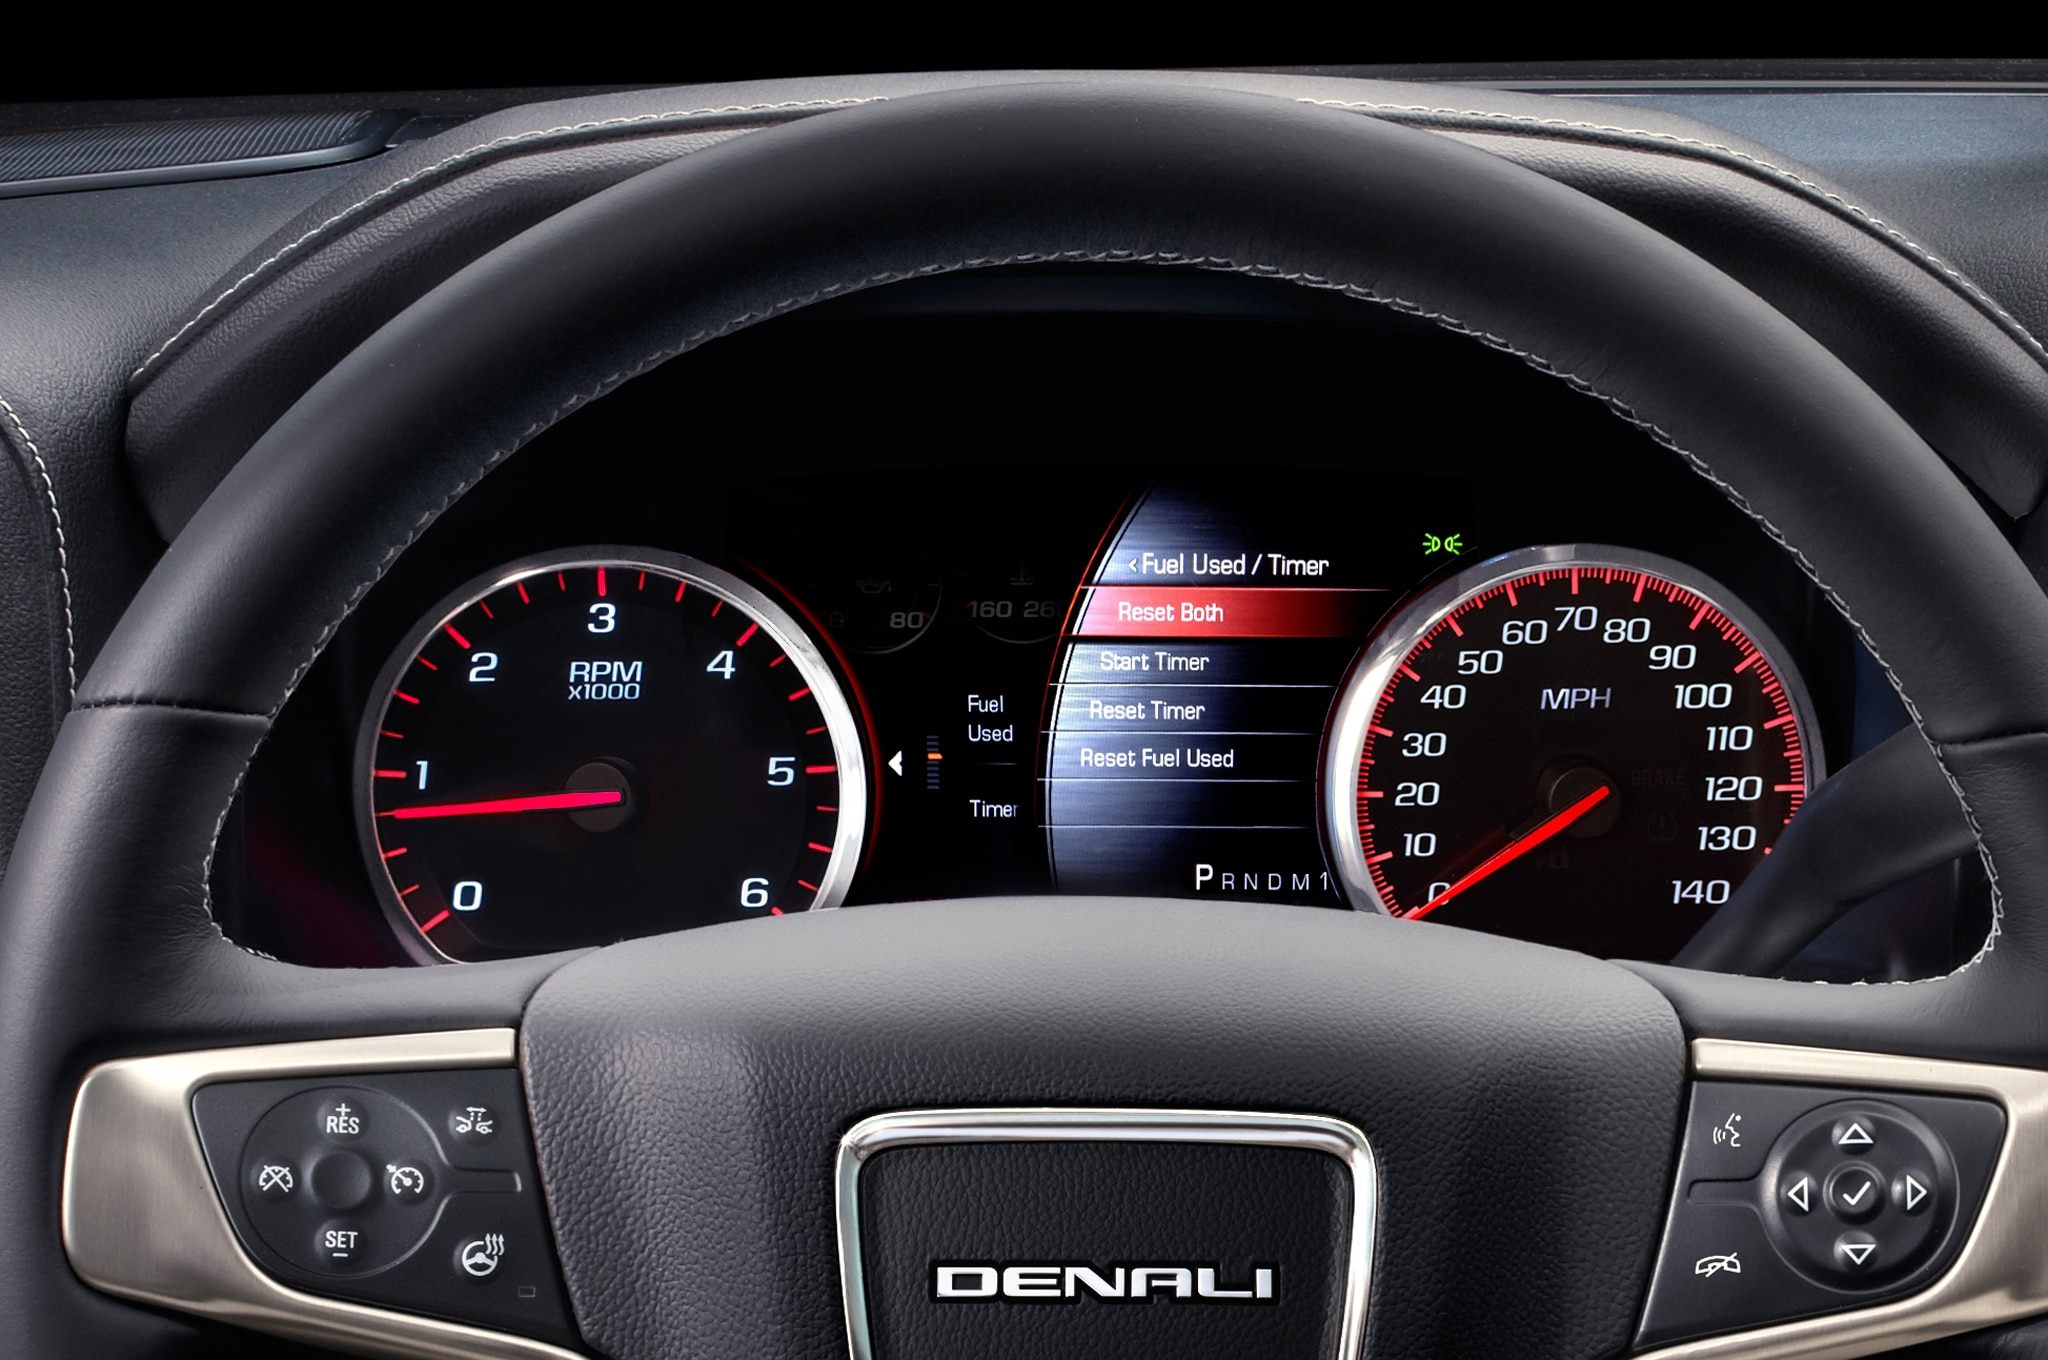 2015 GMC Sierra Denali 2500HD dash quages